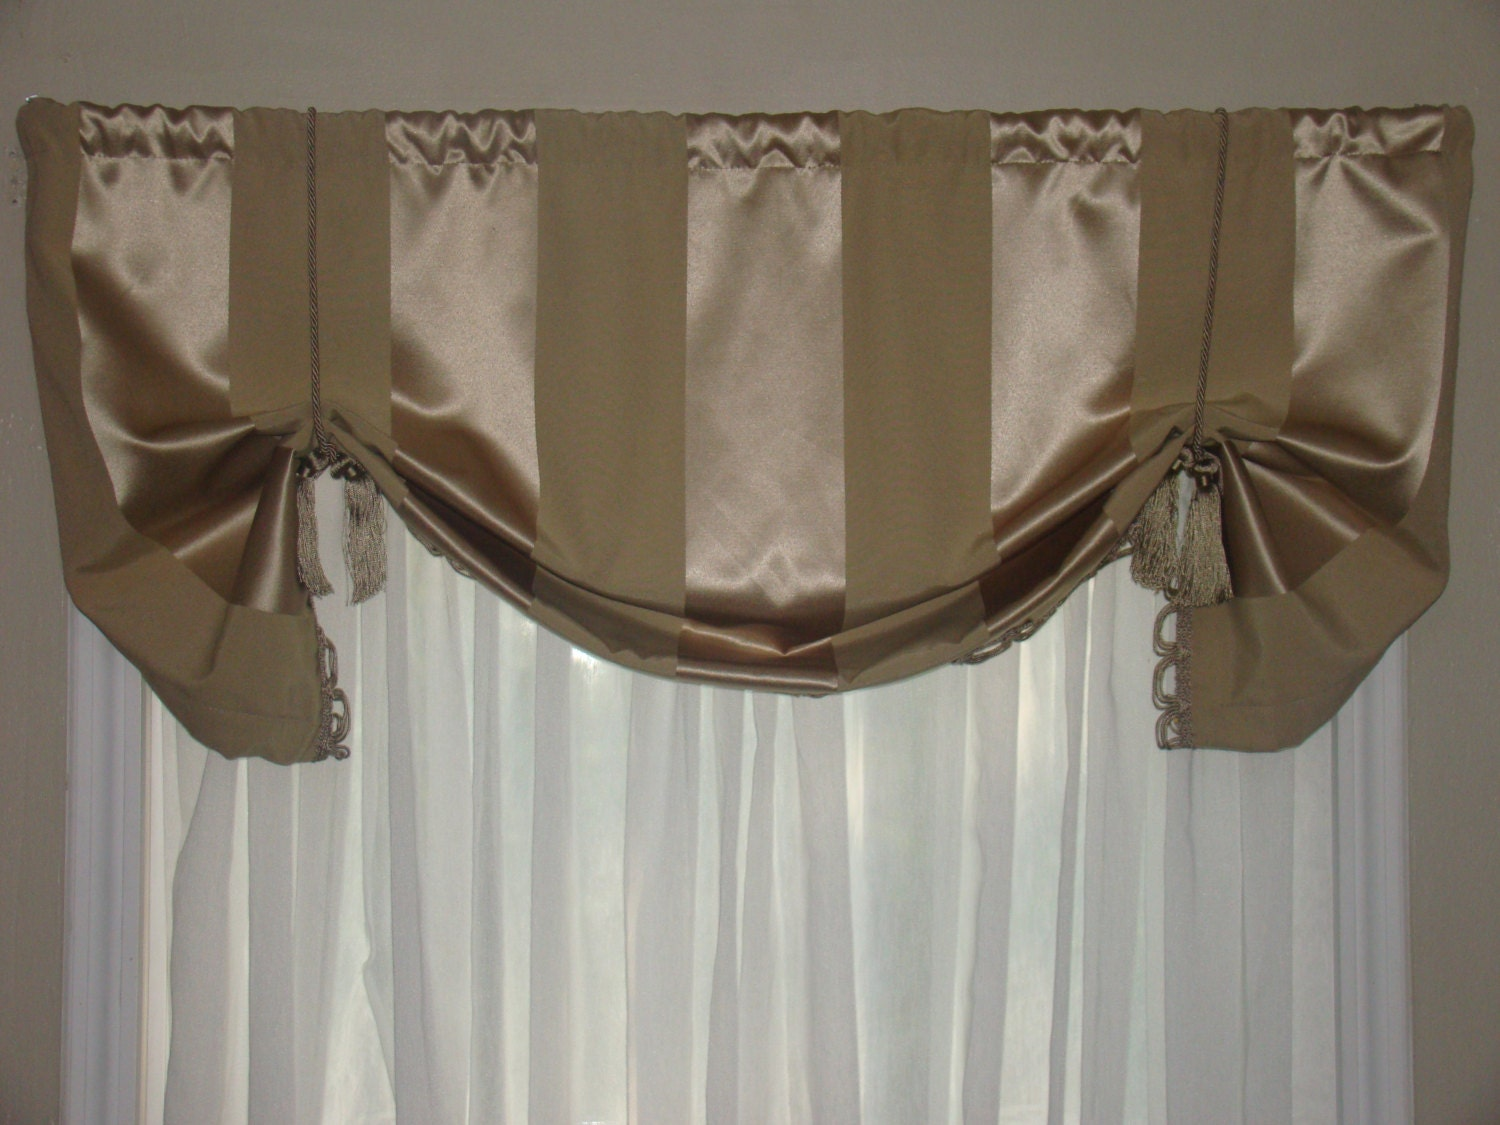 Window Valance Tie Up Valance Tan Loop Fringe By Bandedpillows